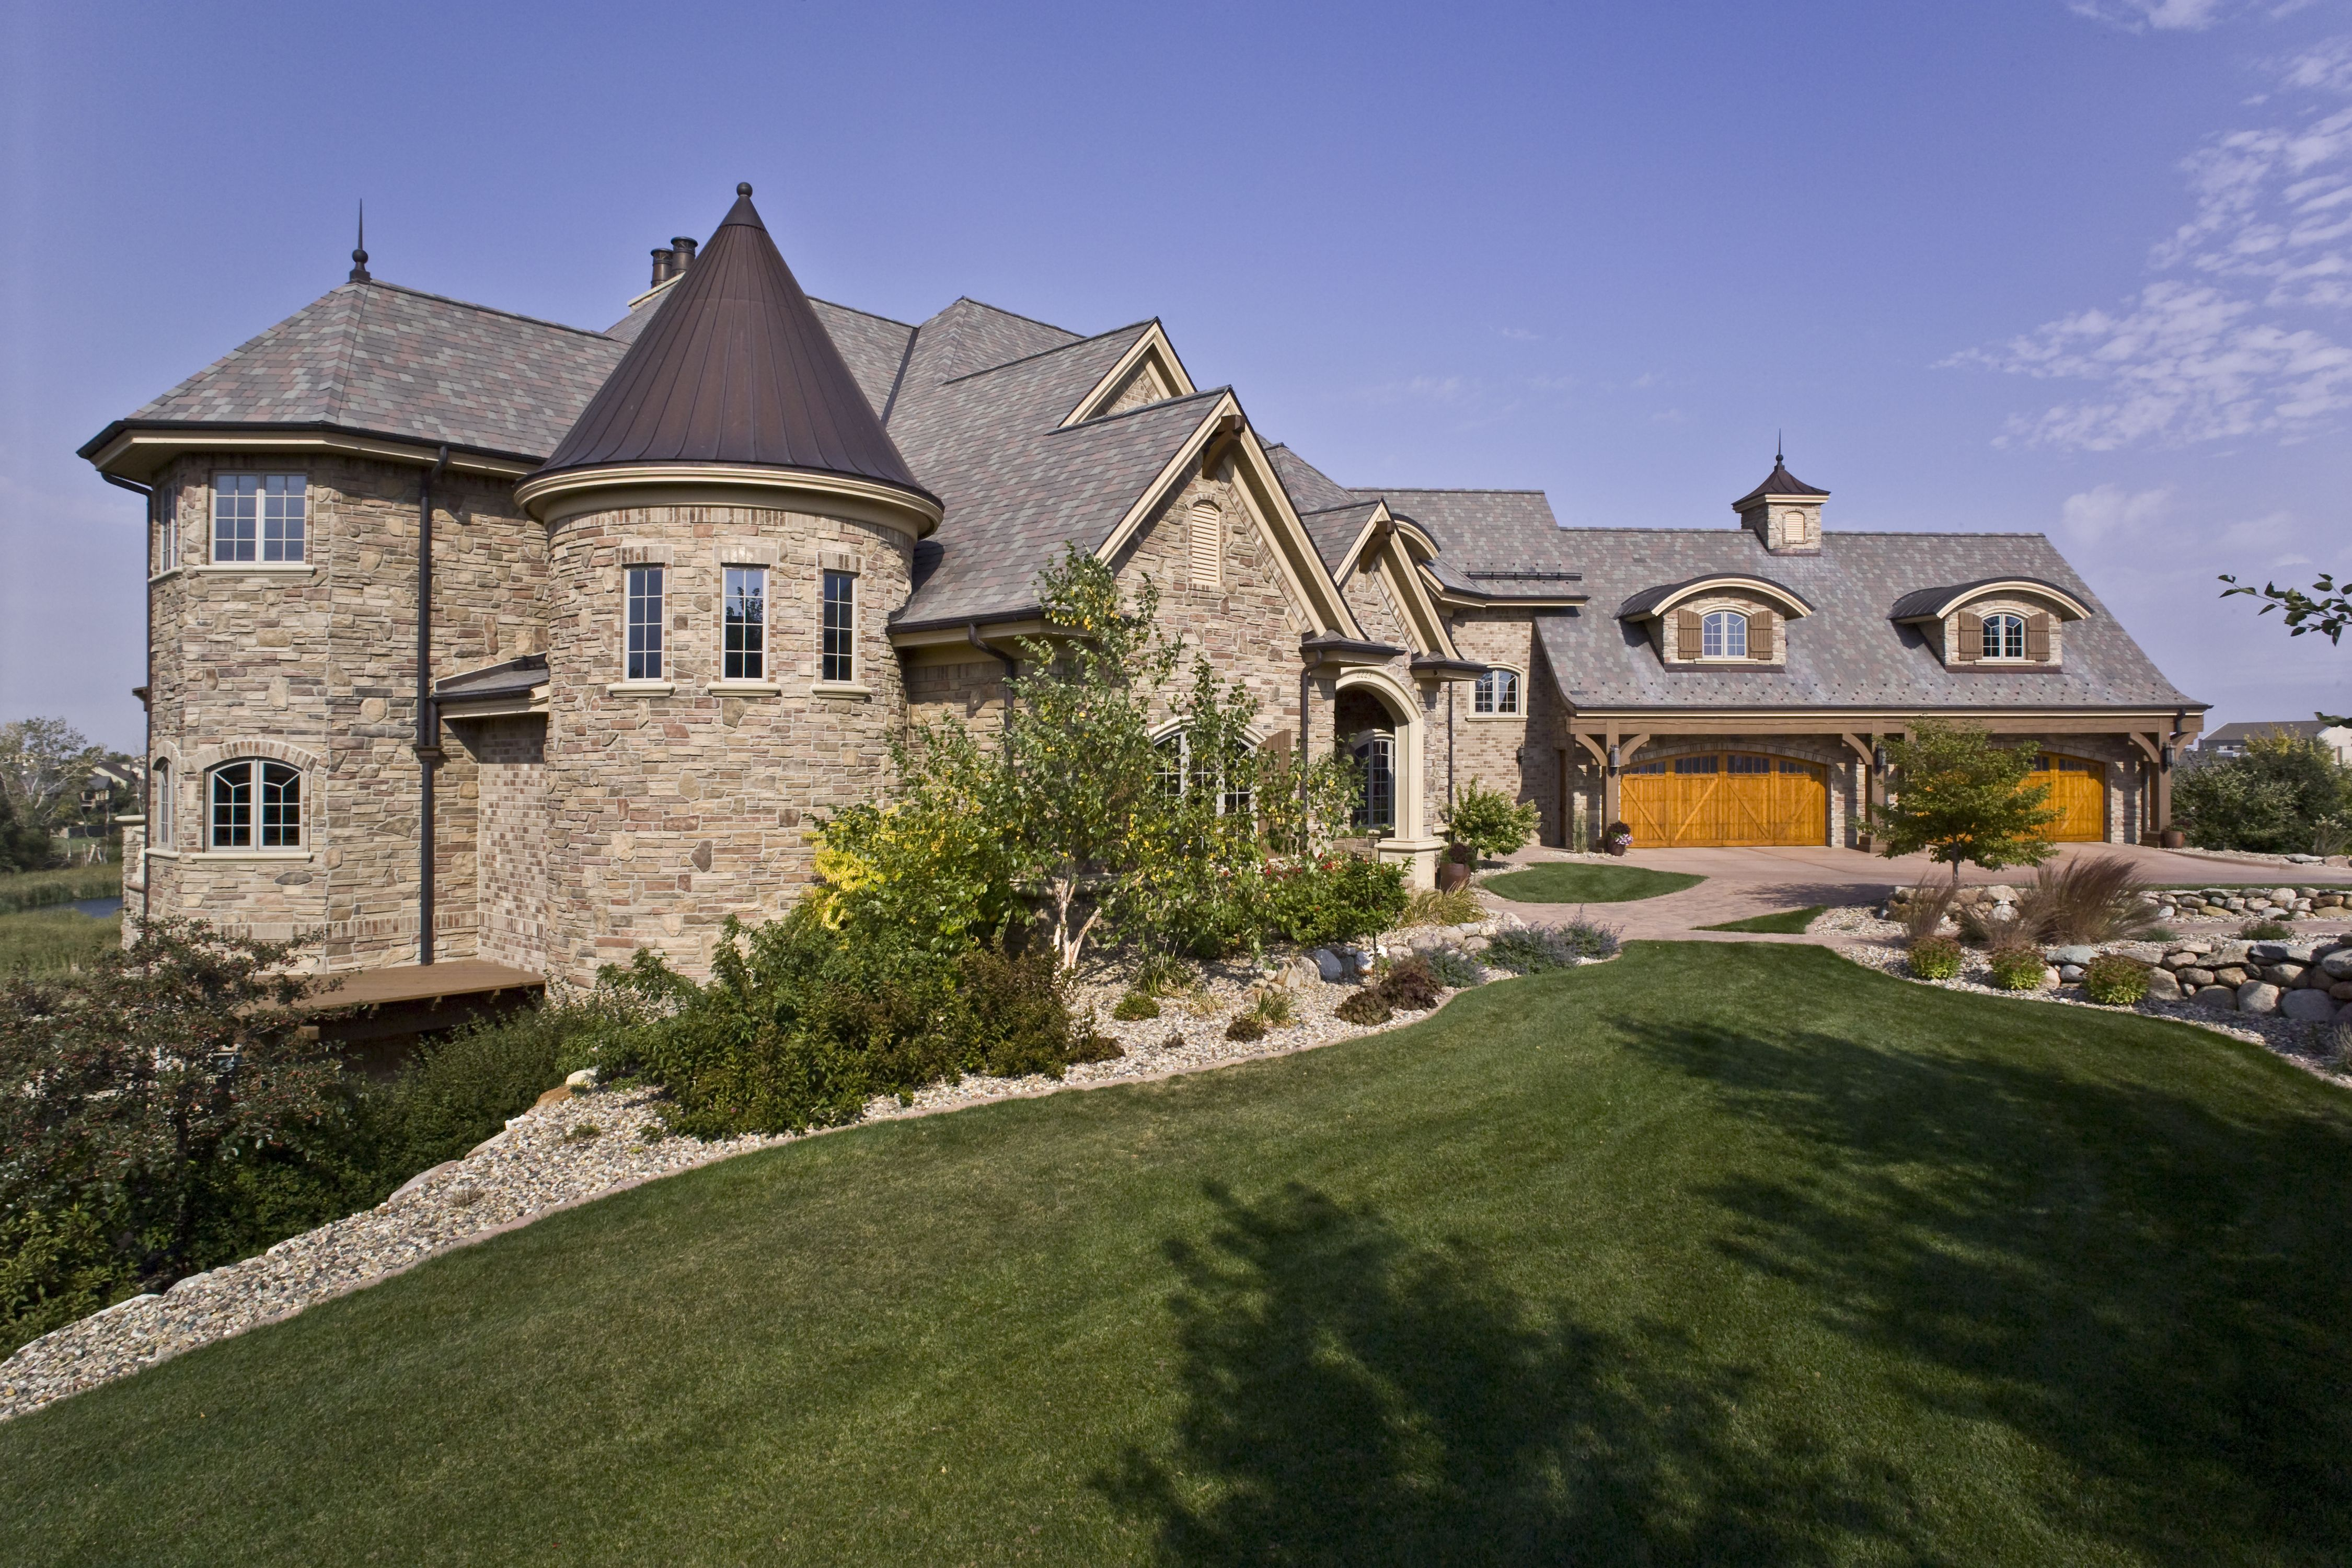 Exterior photos of french country homes joy studio French country stone